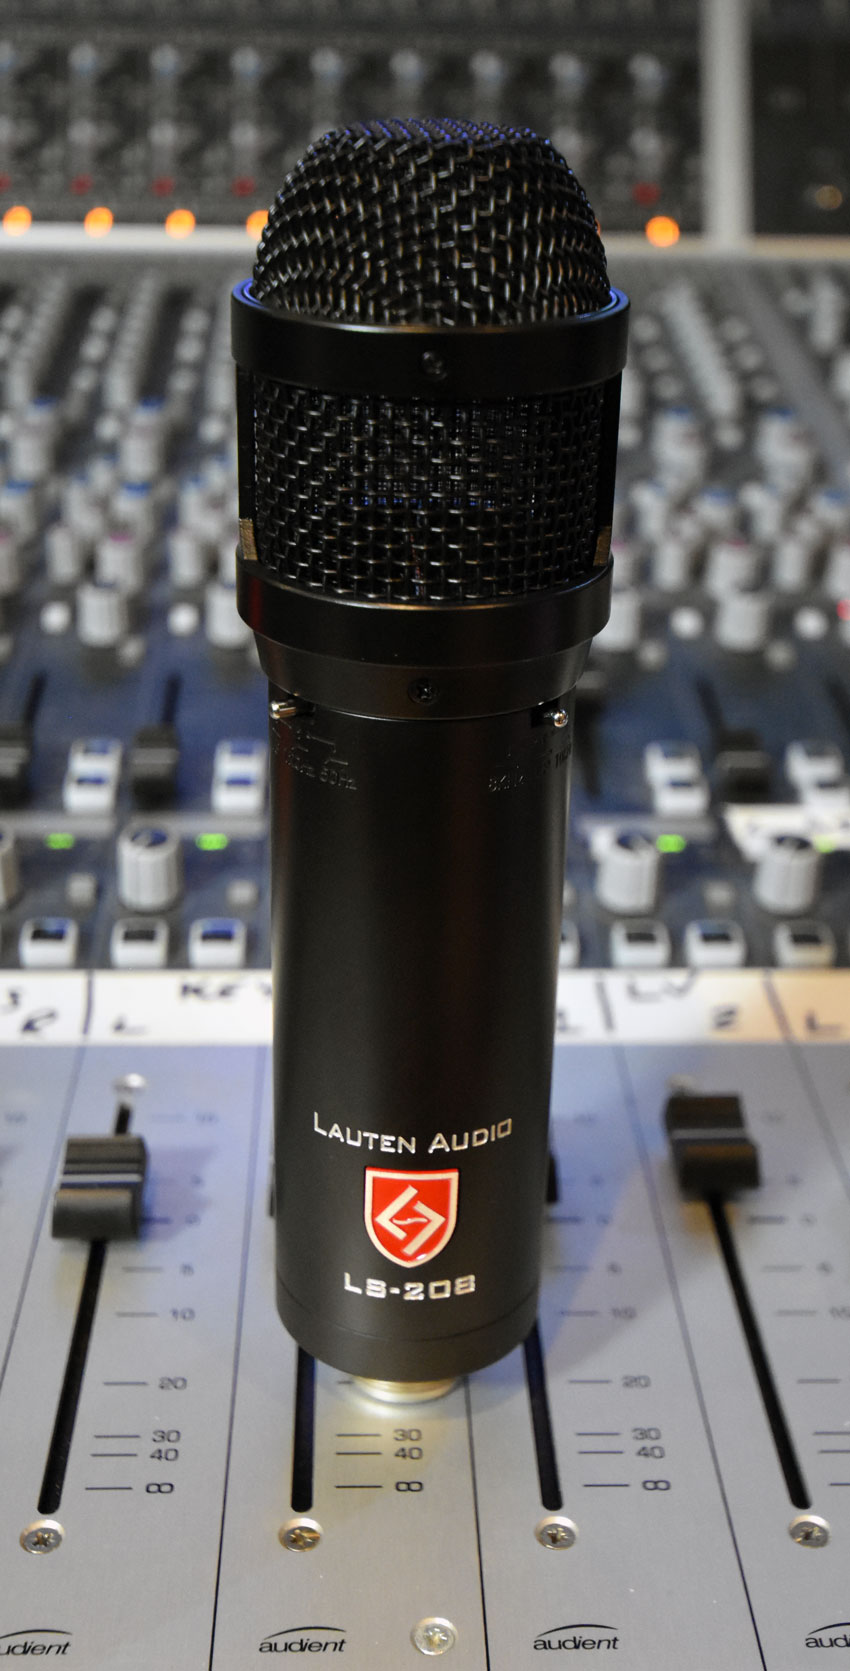 The Lauten LS-208 large diaphragm condenser mic with both high and low pass filters